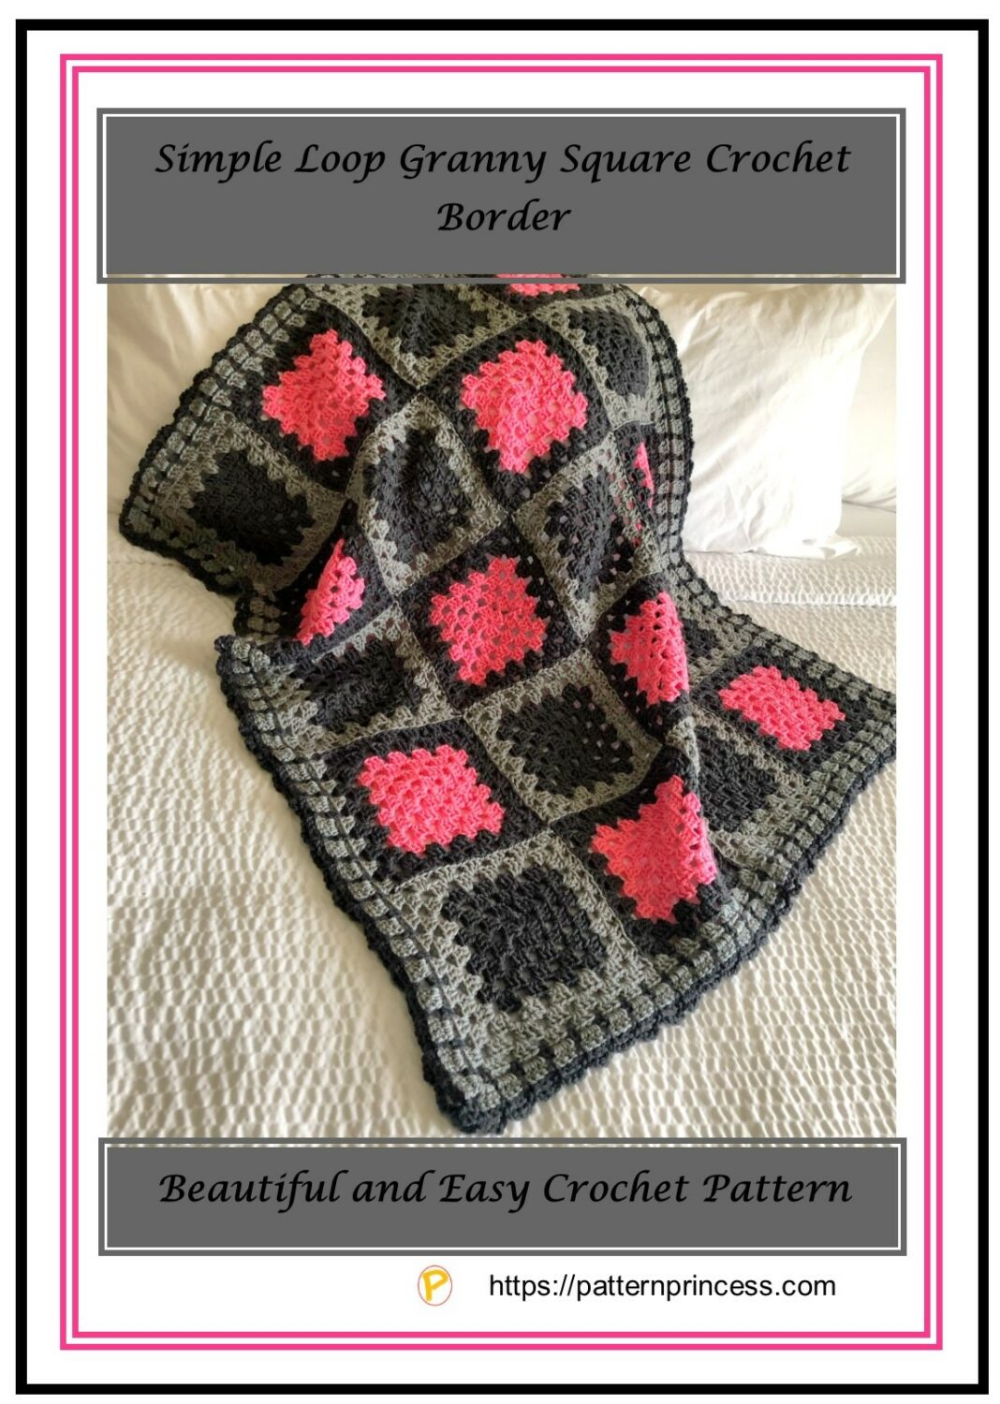 Simple Loop Granny Square Crochet Border  This simple loop granny square crochet border is just one way to beautifully finish off a blanket There is just something addict...